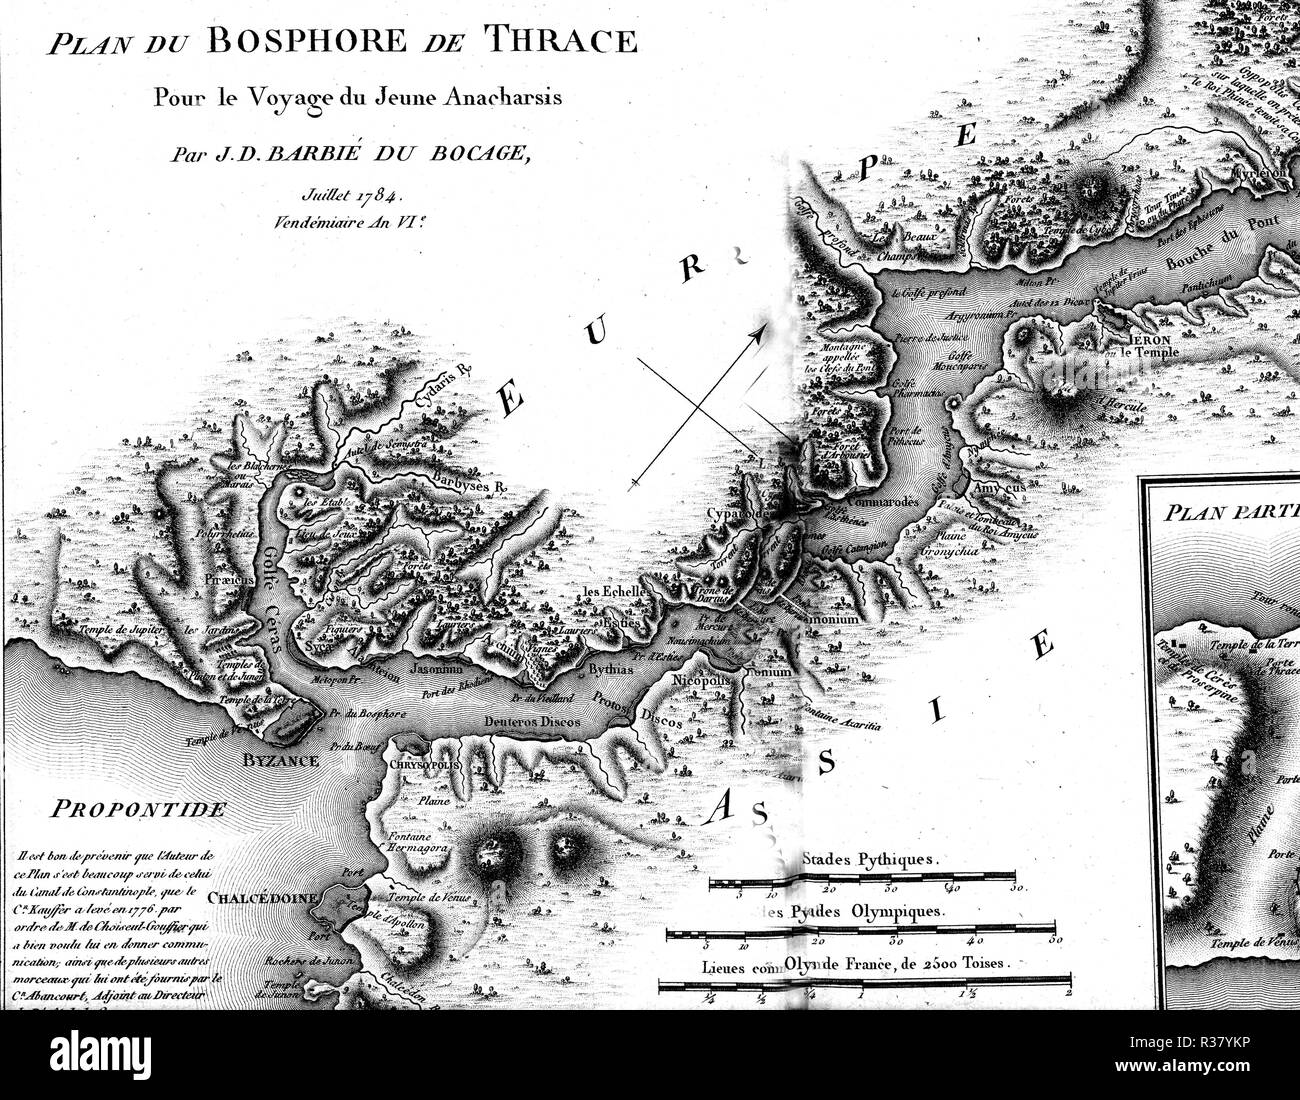 Thracian Bosphorus and Byzantium Greece Minor Asia, Travel of the young Anacharsis, 1784, France - Stock Image